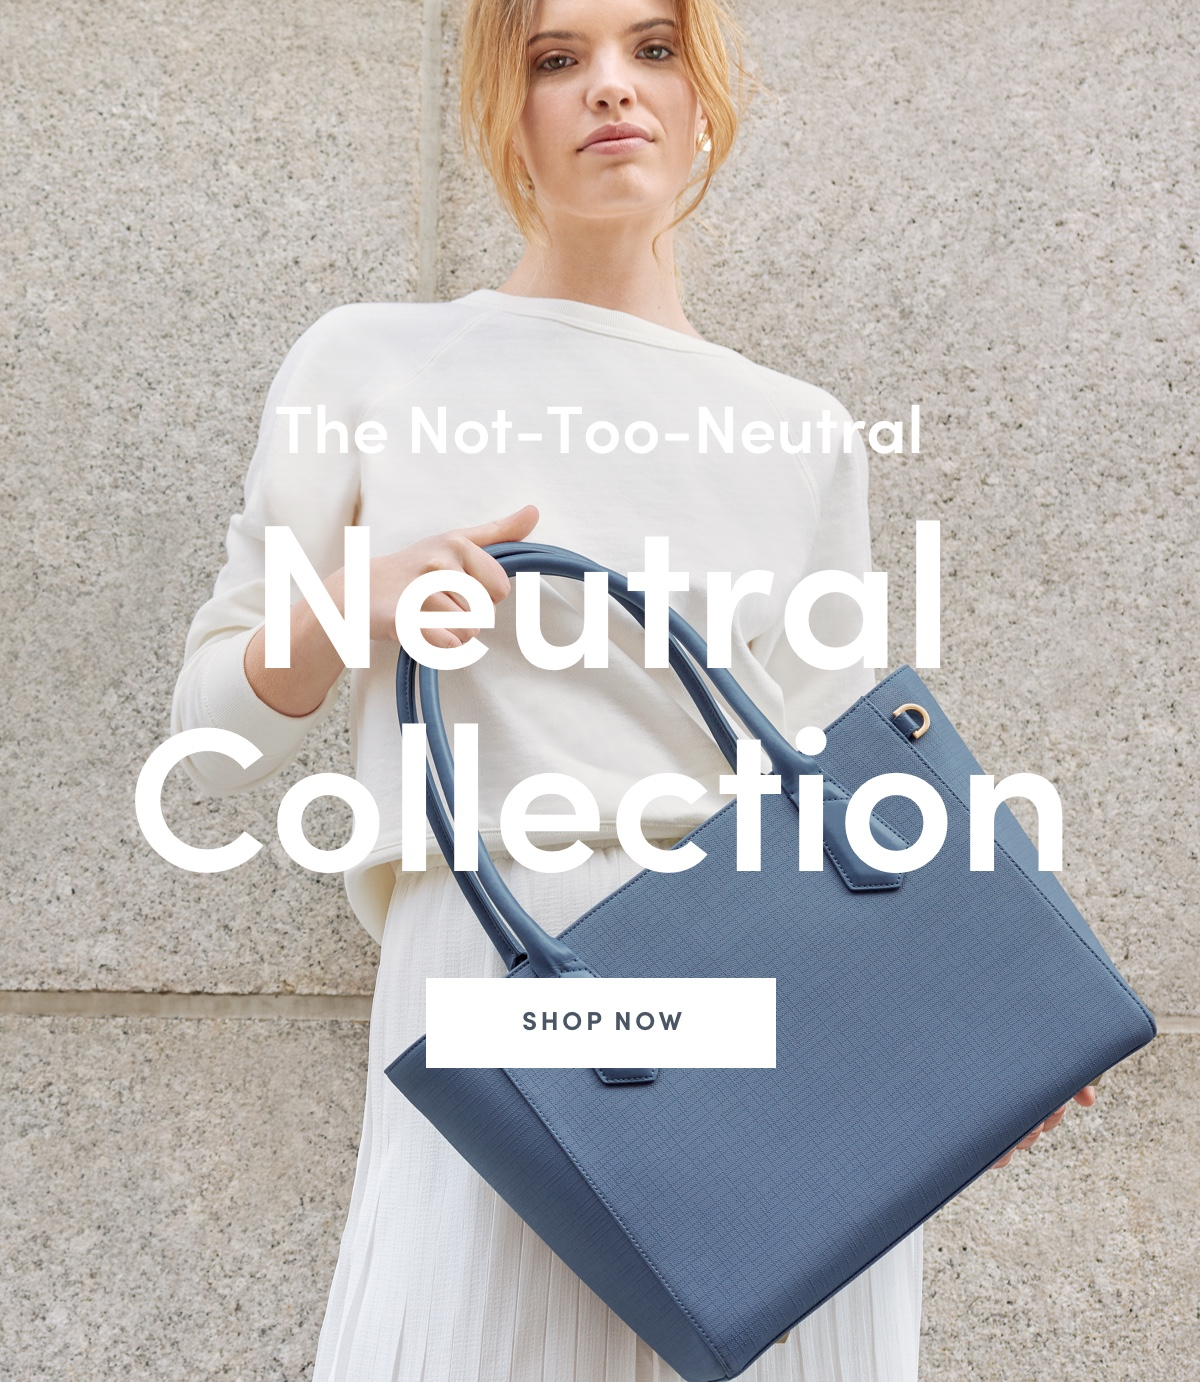 The Not-Too-Neutral Neutral Collection - Shop Now: https://www.dagnedover.com/collections/new-neutrals